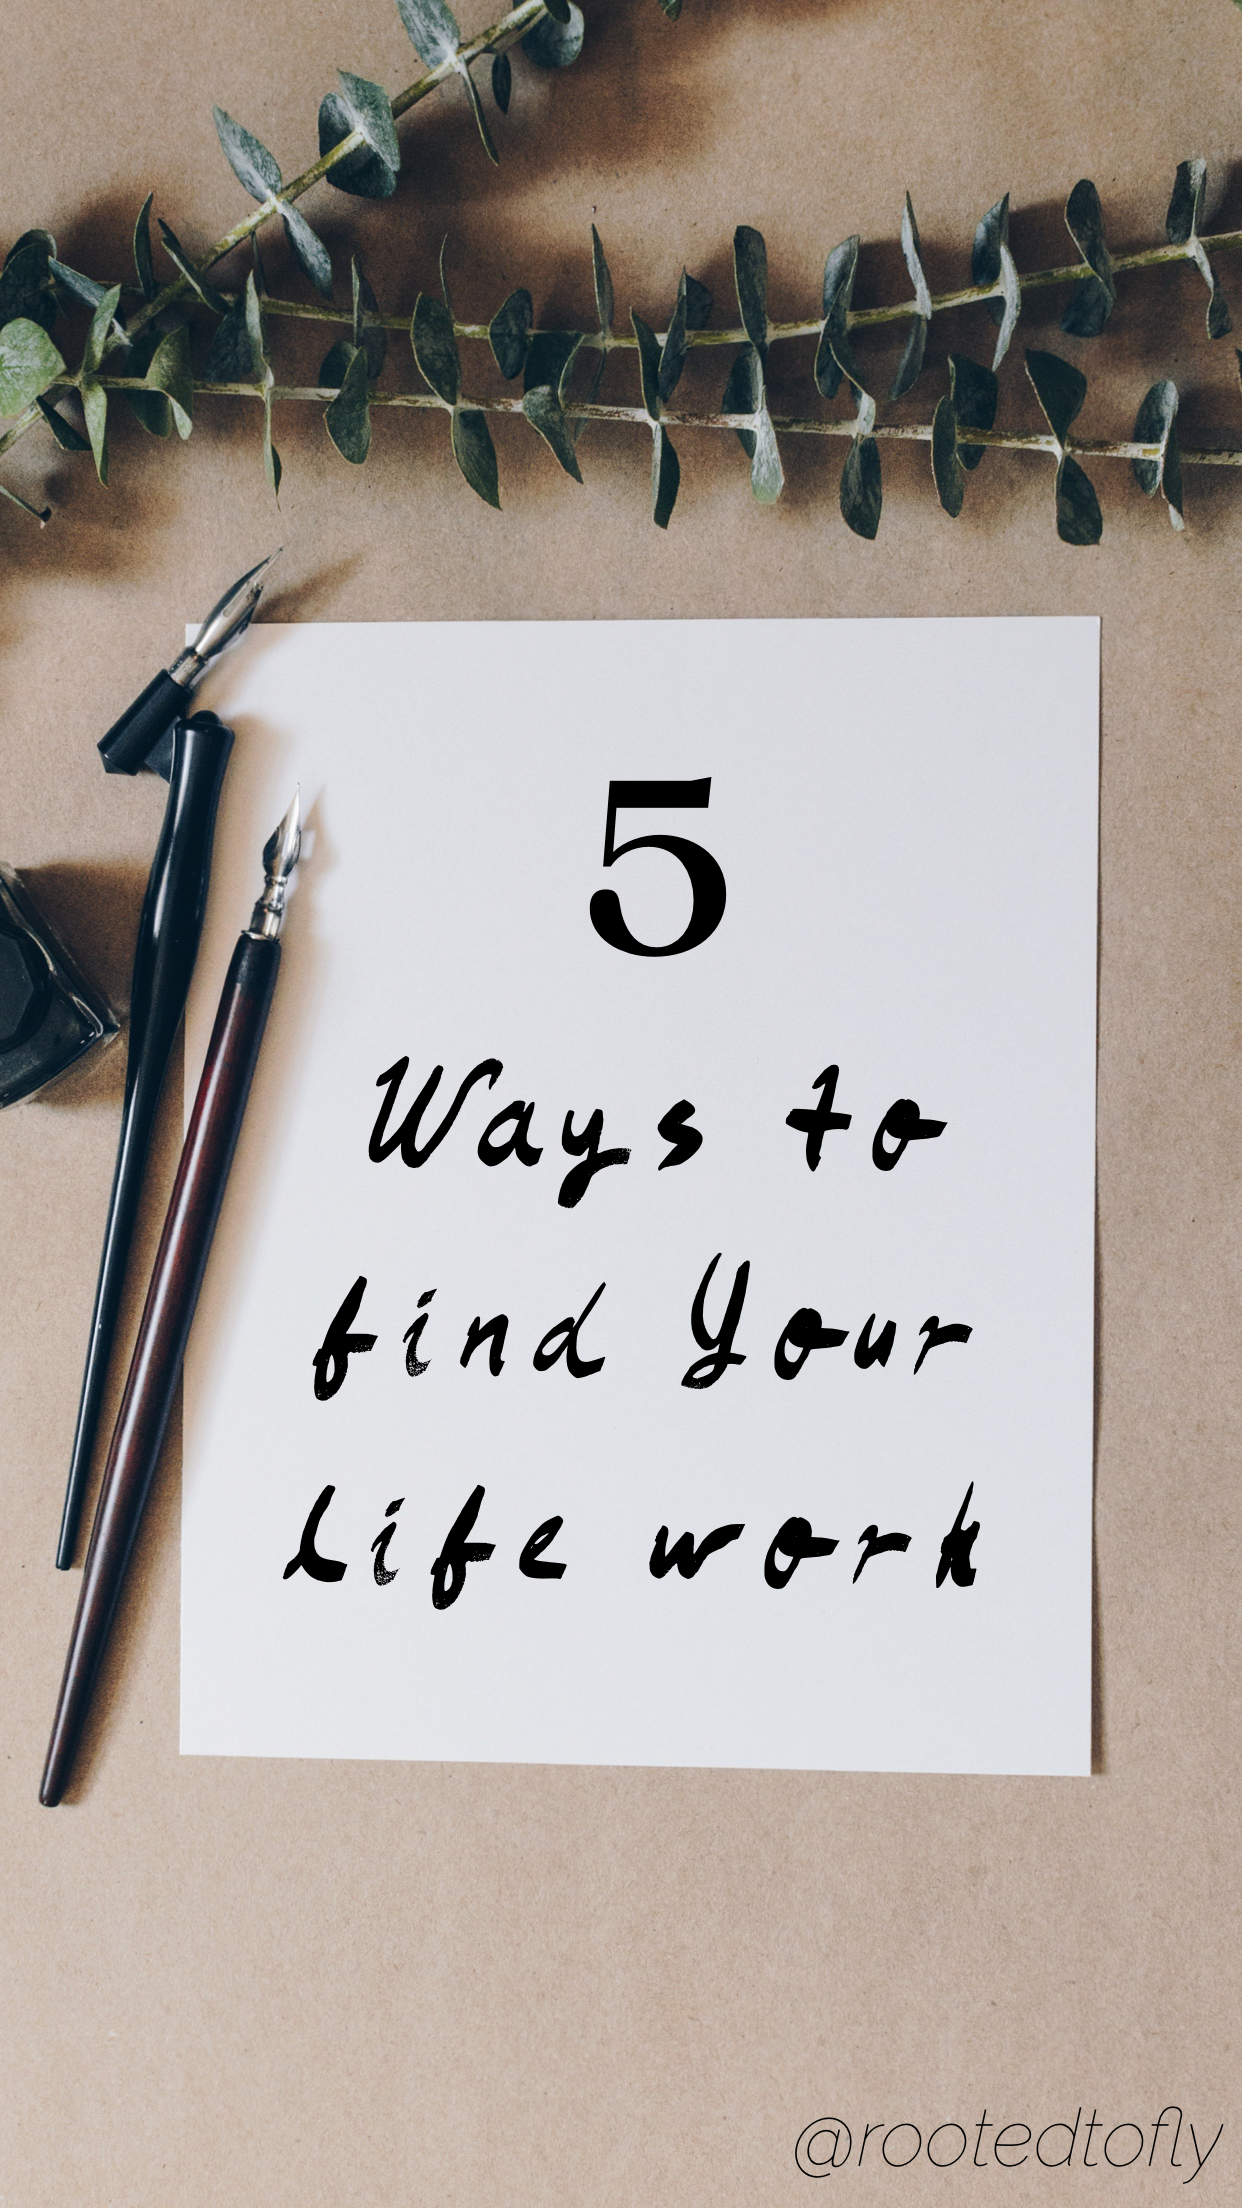 5 Ways To Find Your Life Work